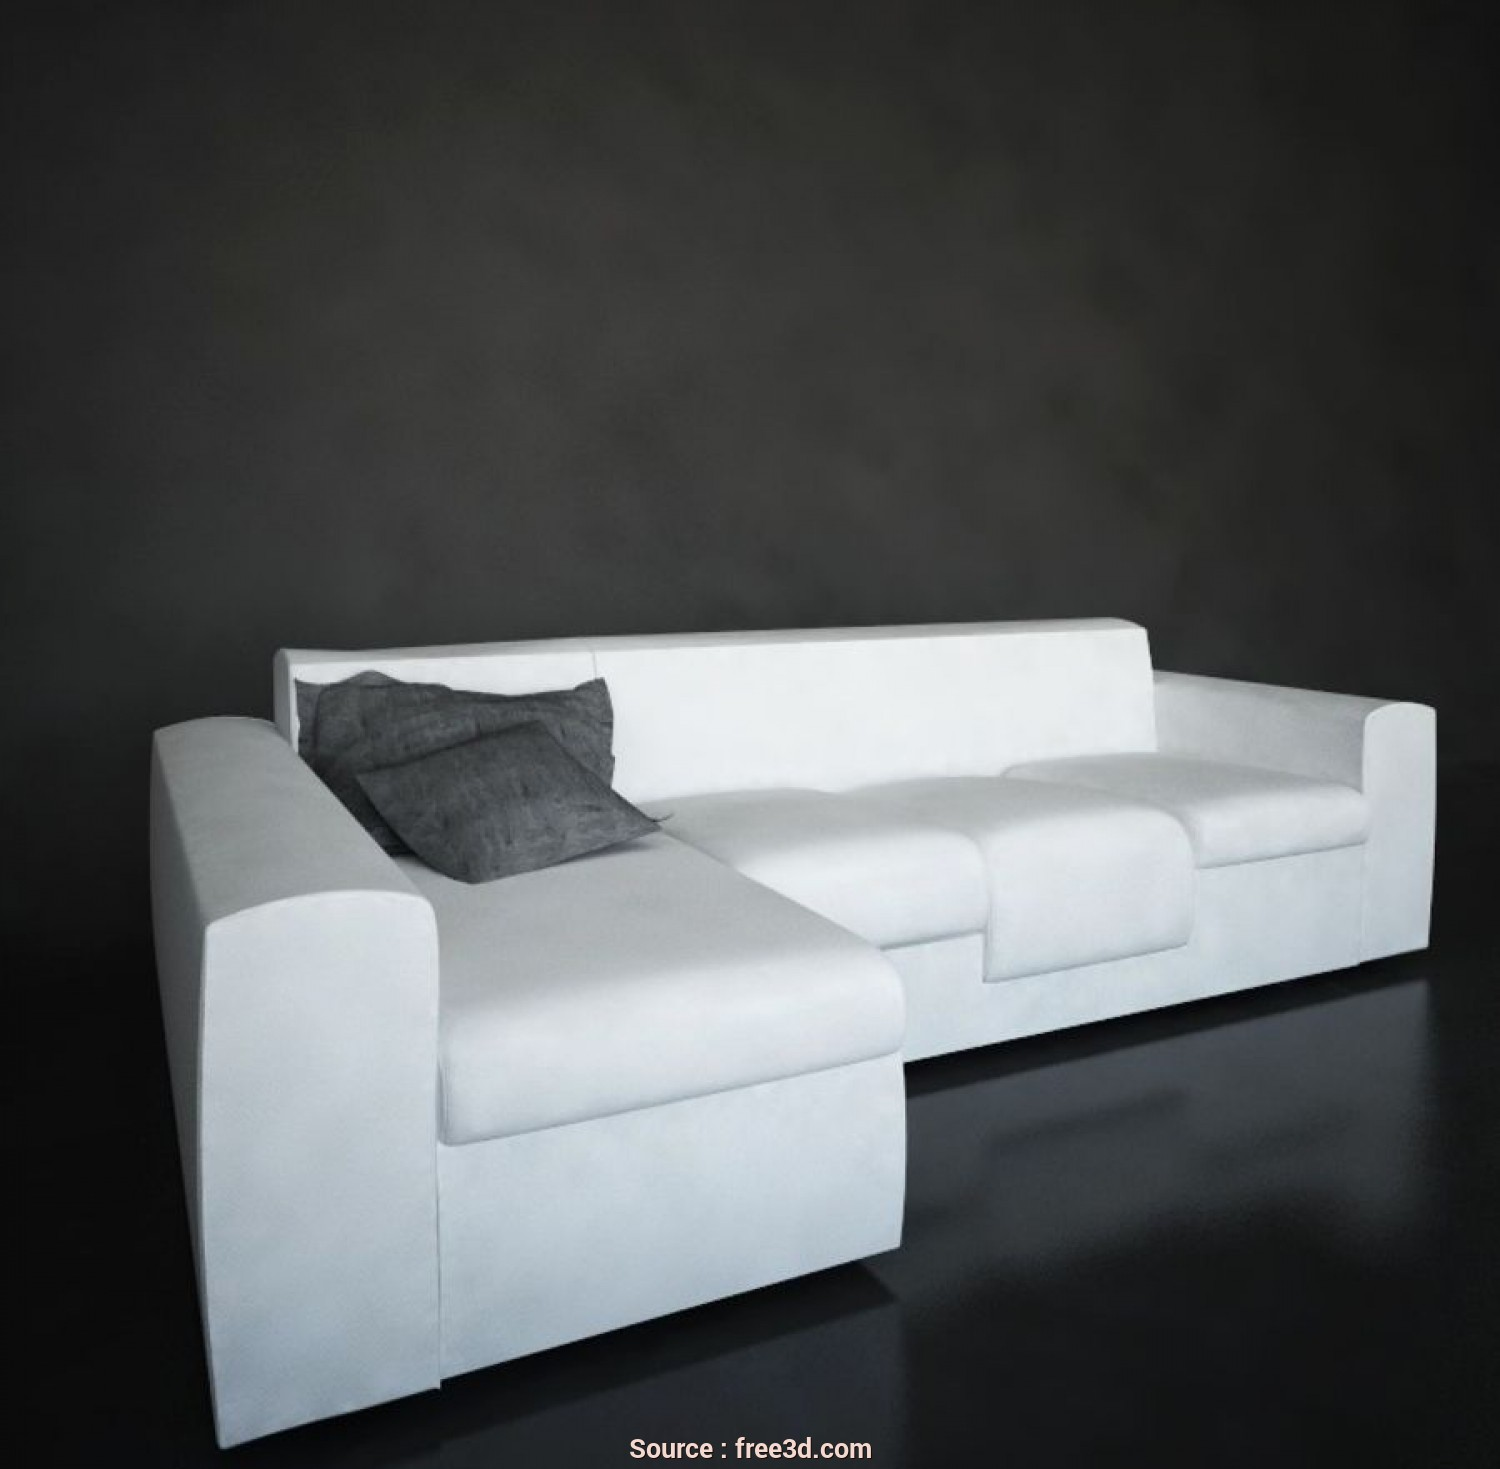 Divani, 3D, Casuale Chaise Longue Sofa. 3D Model $8, .C4D .Dxf .3Ds .Max .Dwg, Free3D